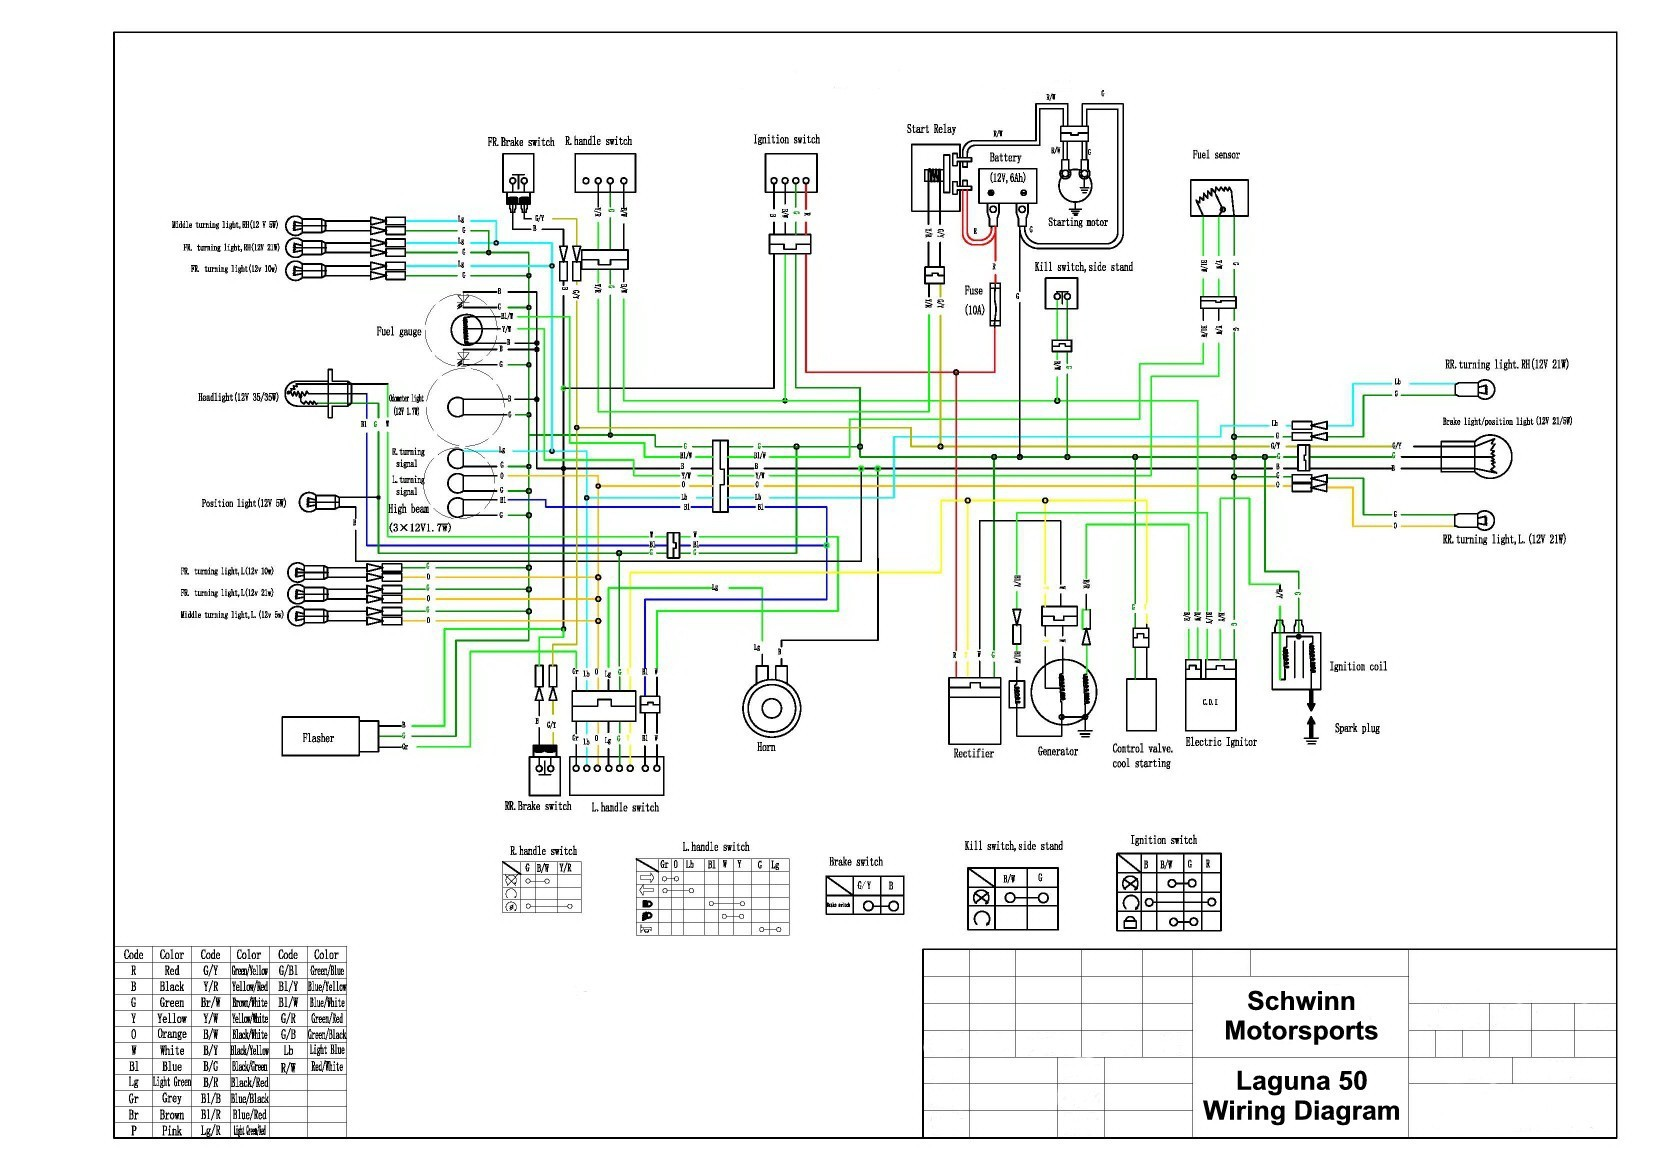 mad dog scooter wiring diagram wiring diagram rh jh pool de